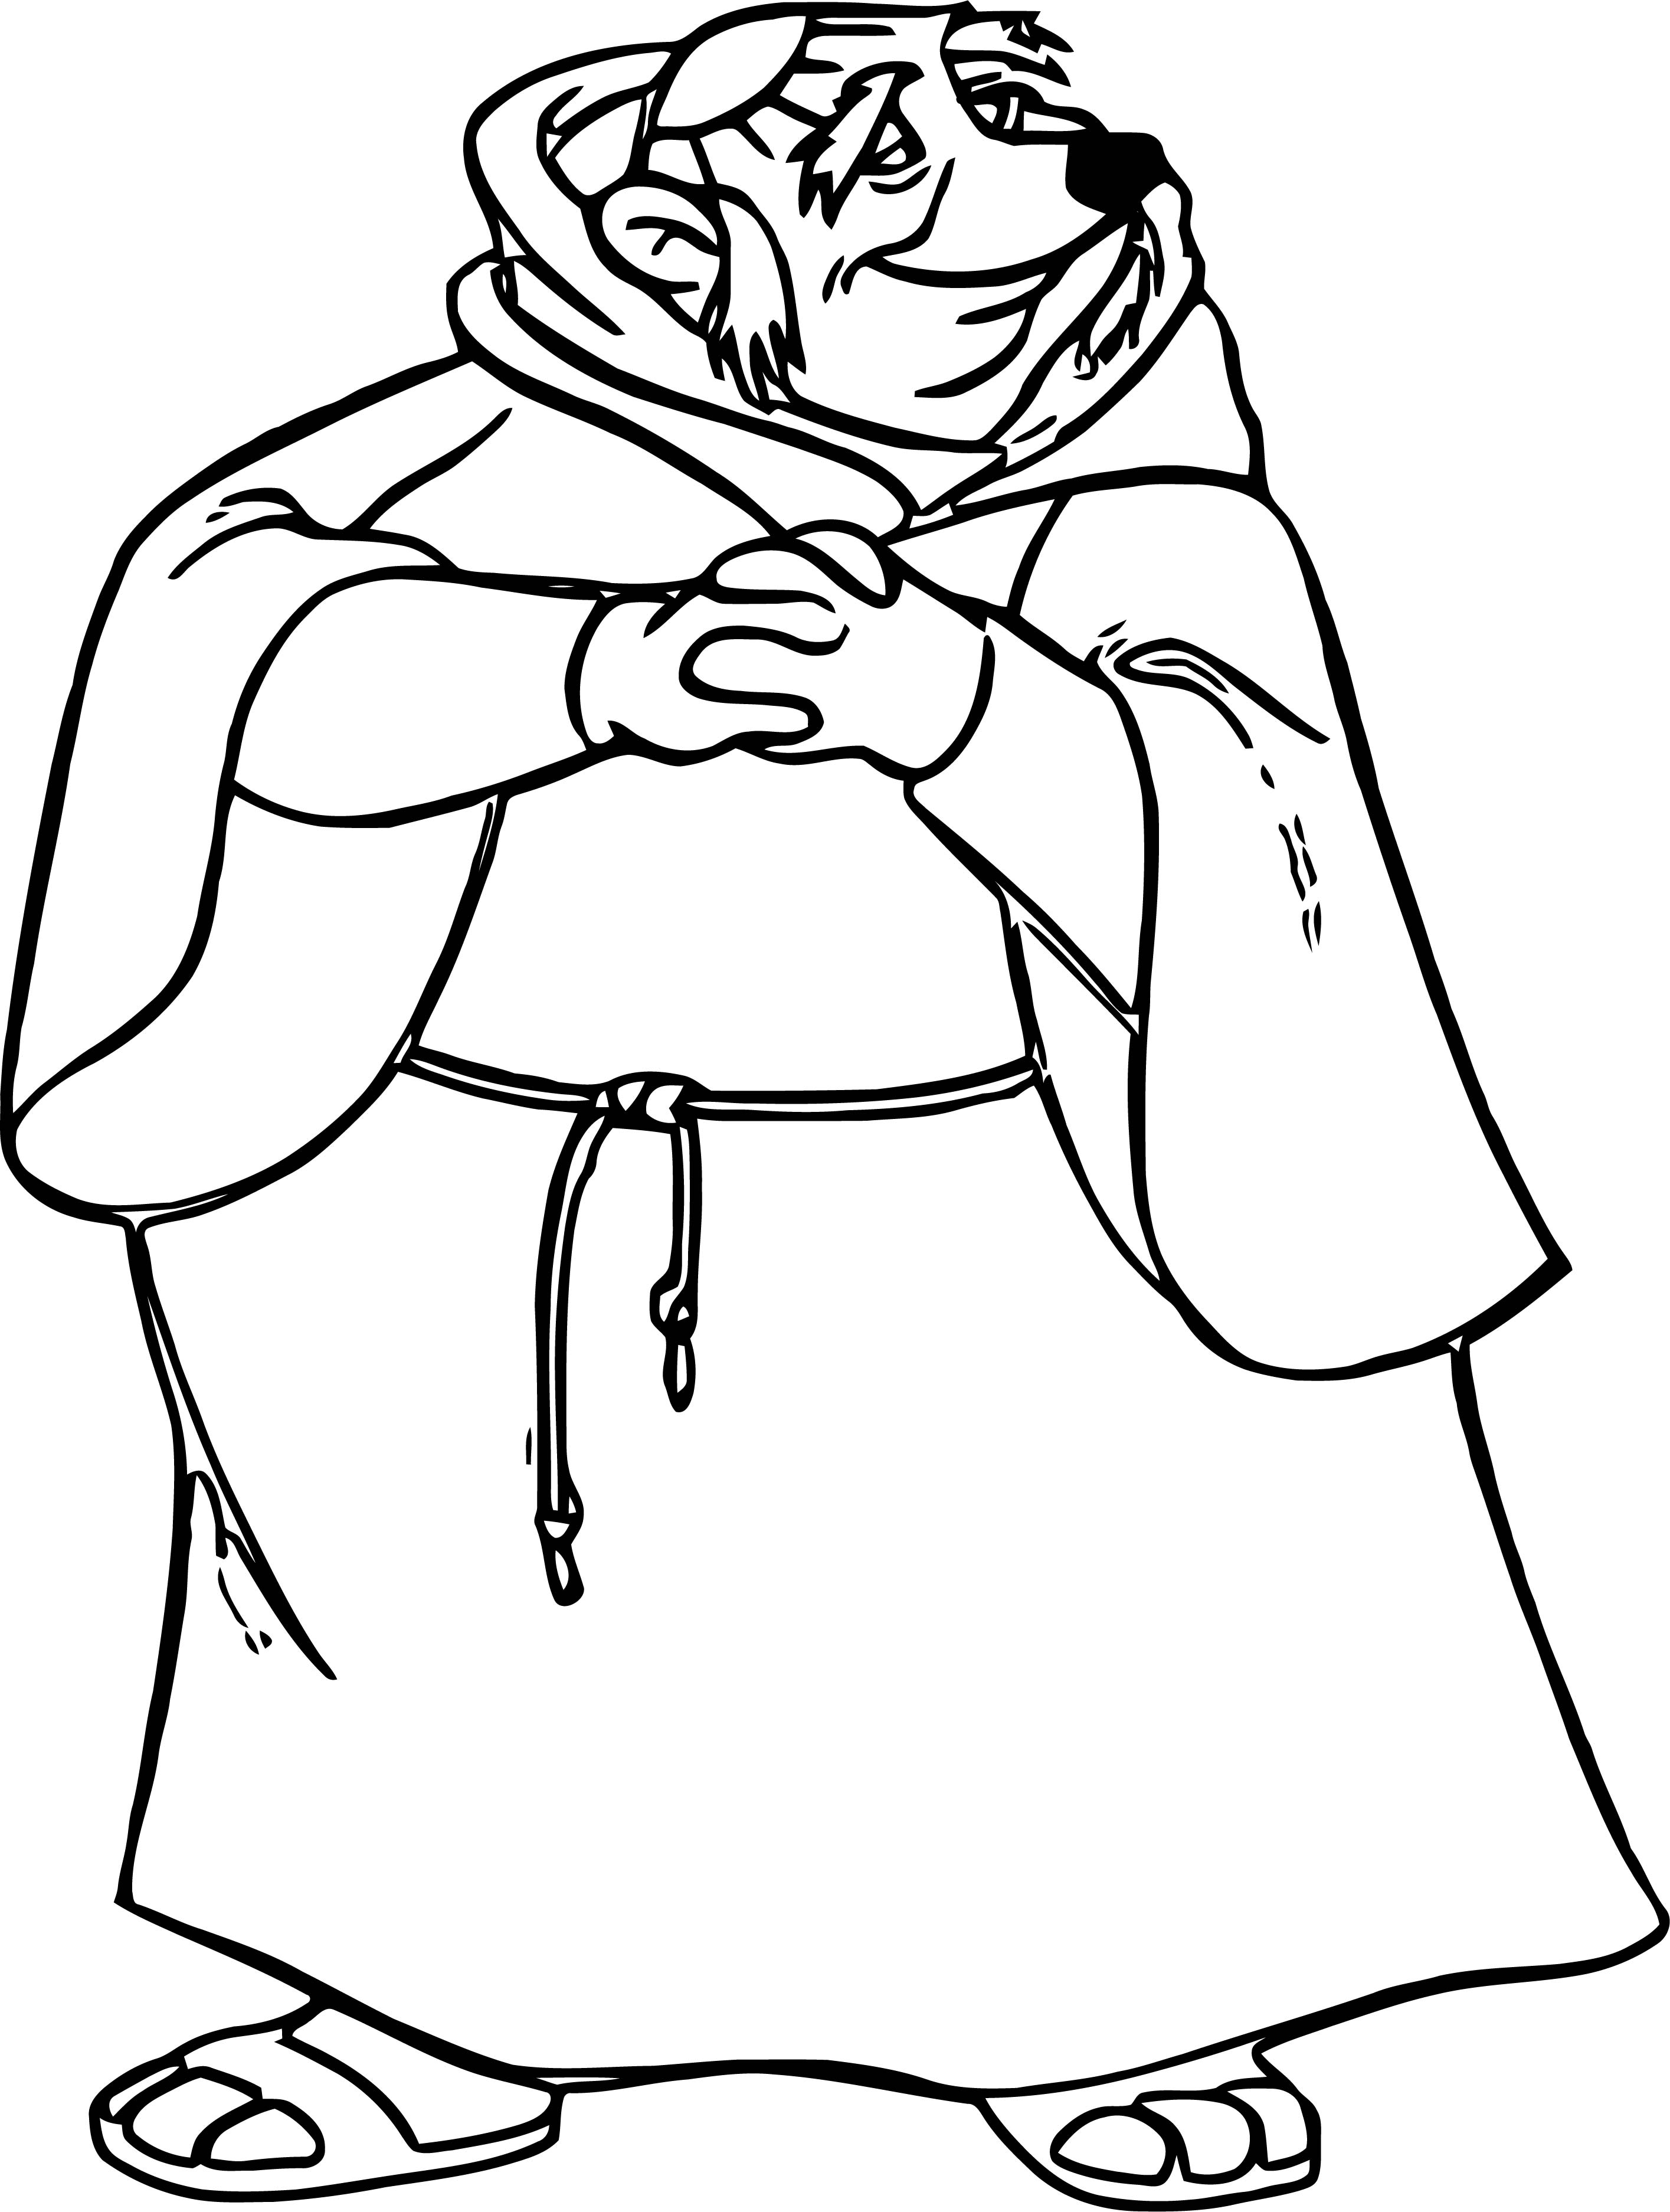 Tuck 2 Coloring Page